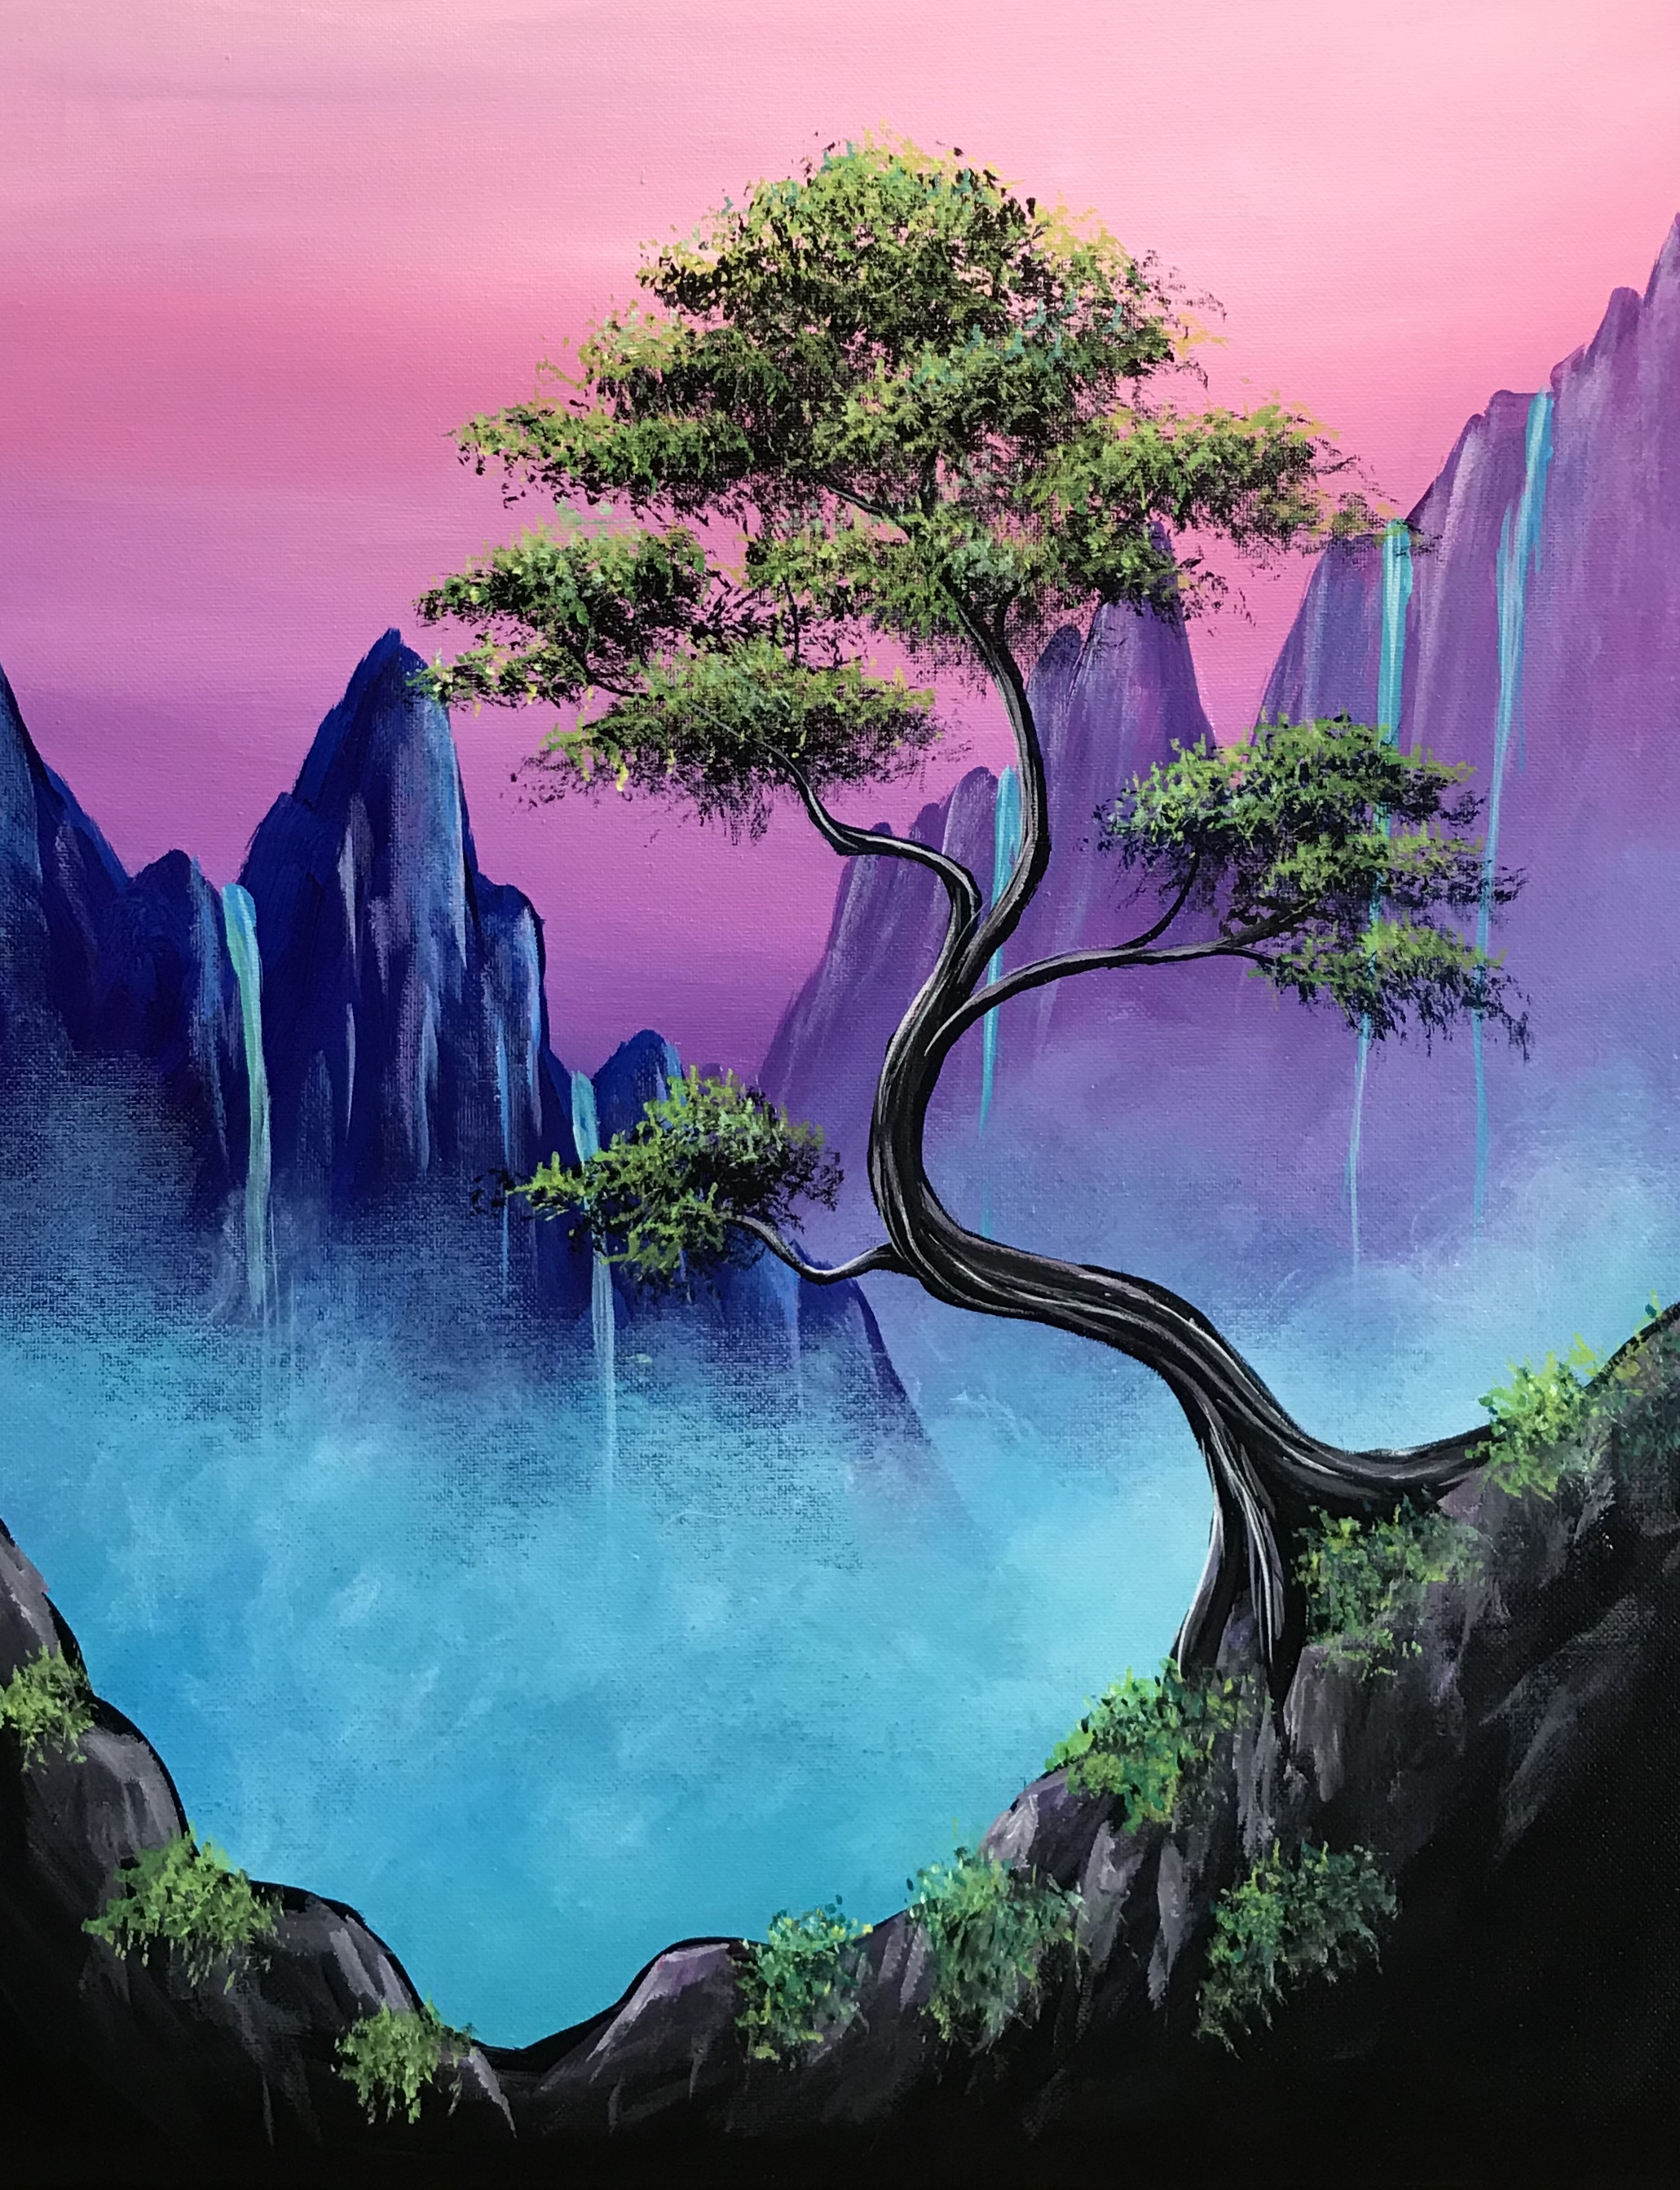 A Misty Mountain Bonsai Falls experience project by Yaymaker